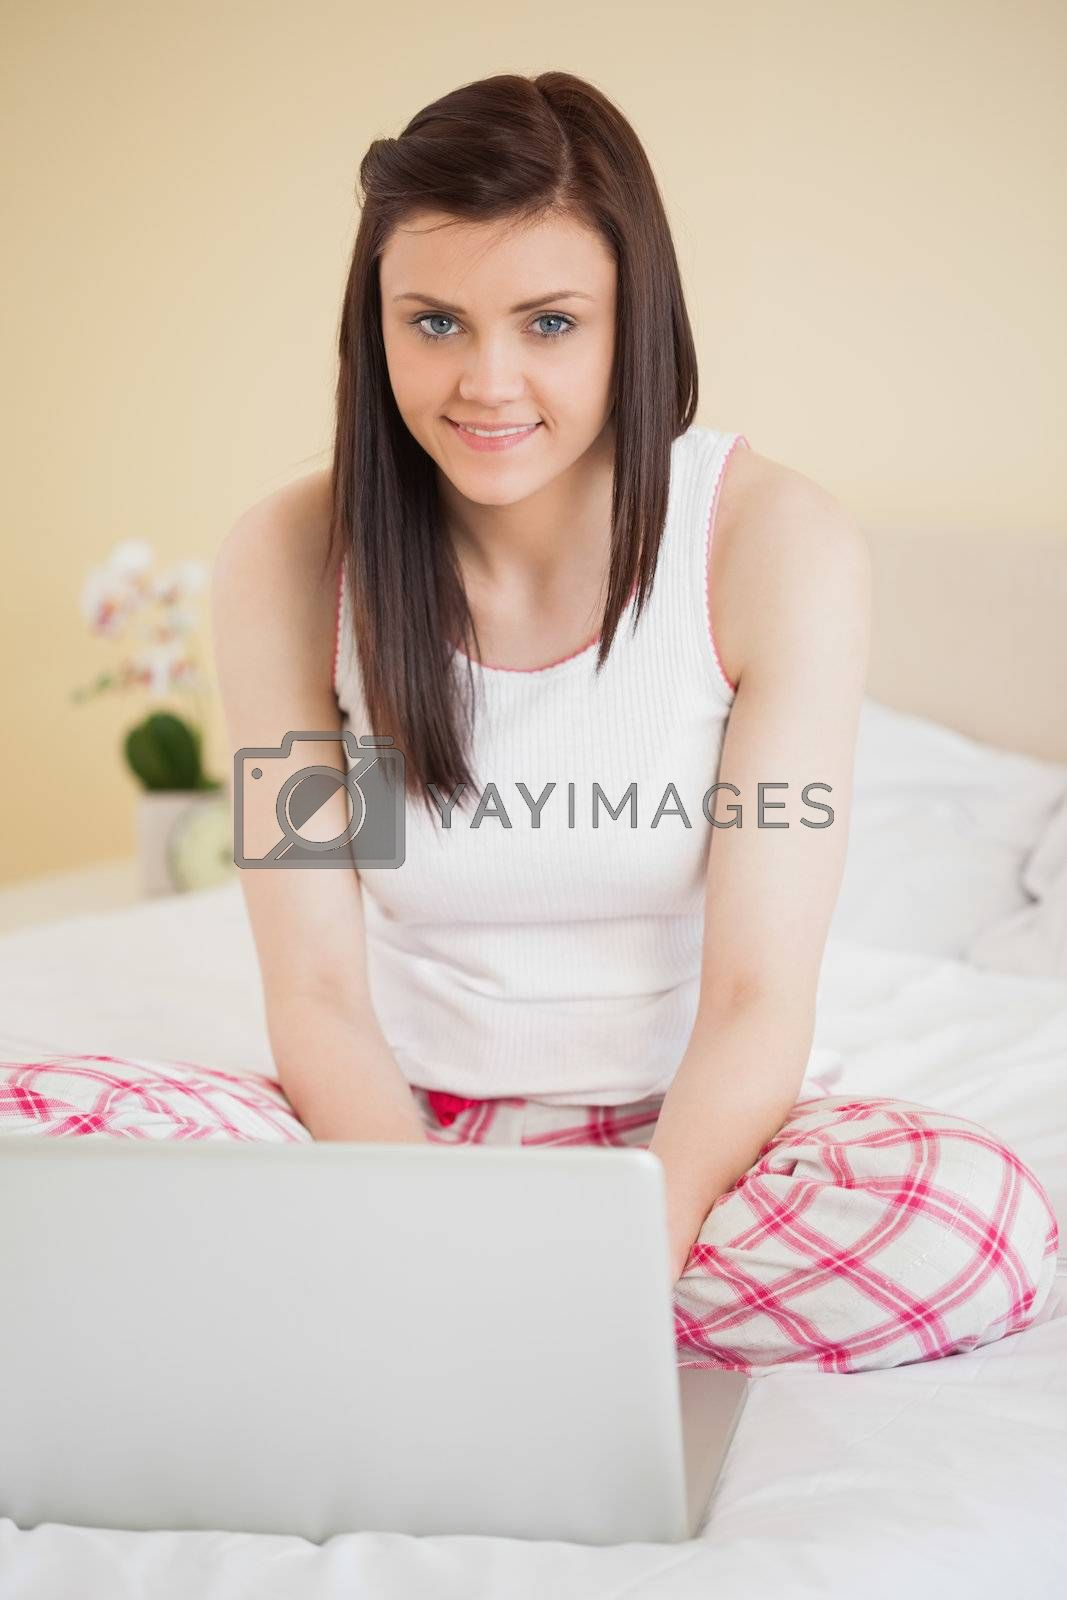 Smiling girl using a laptop sitting on her bed looking at camera by Wavebreakmedia